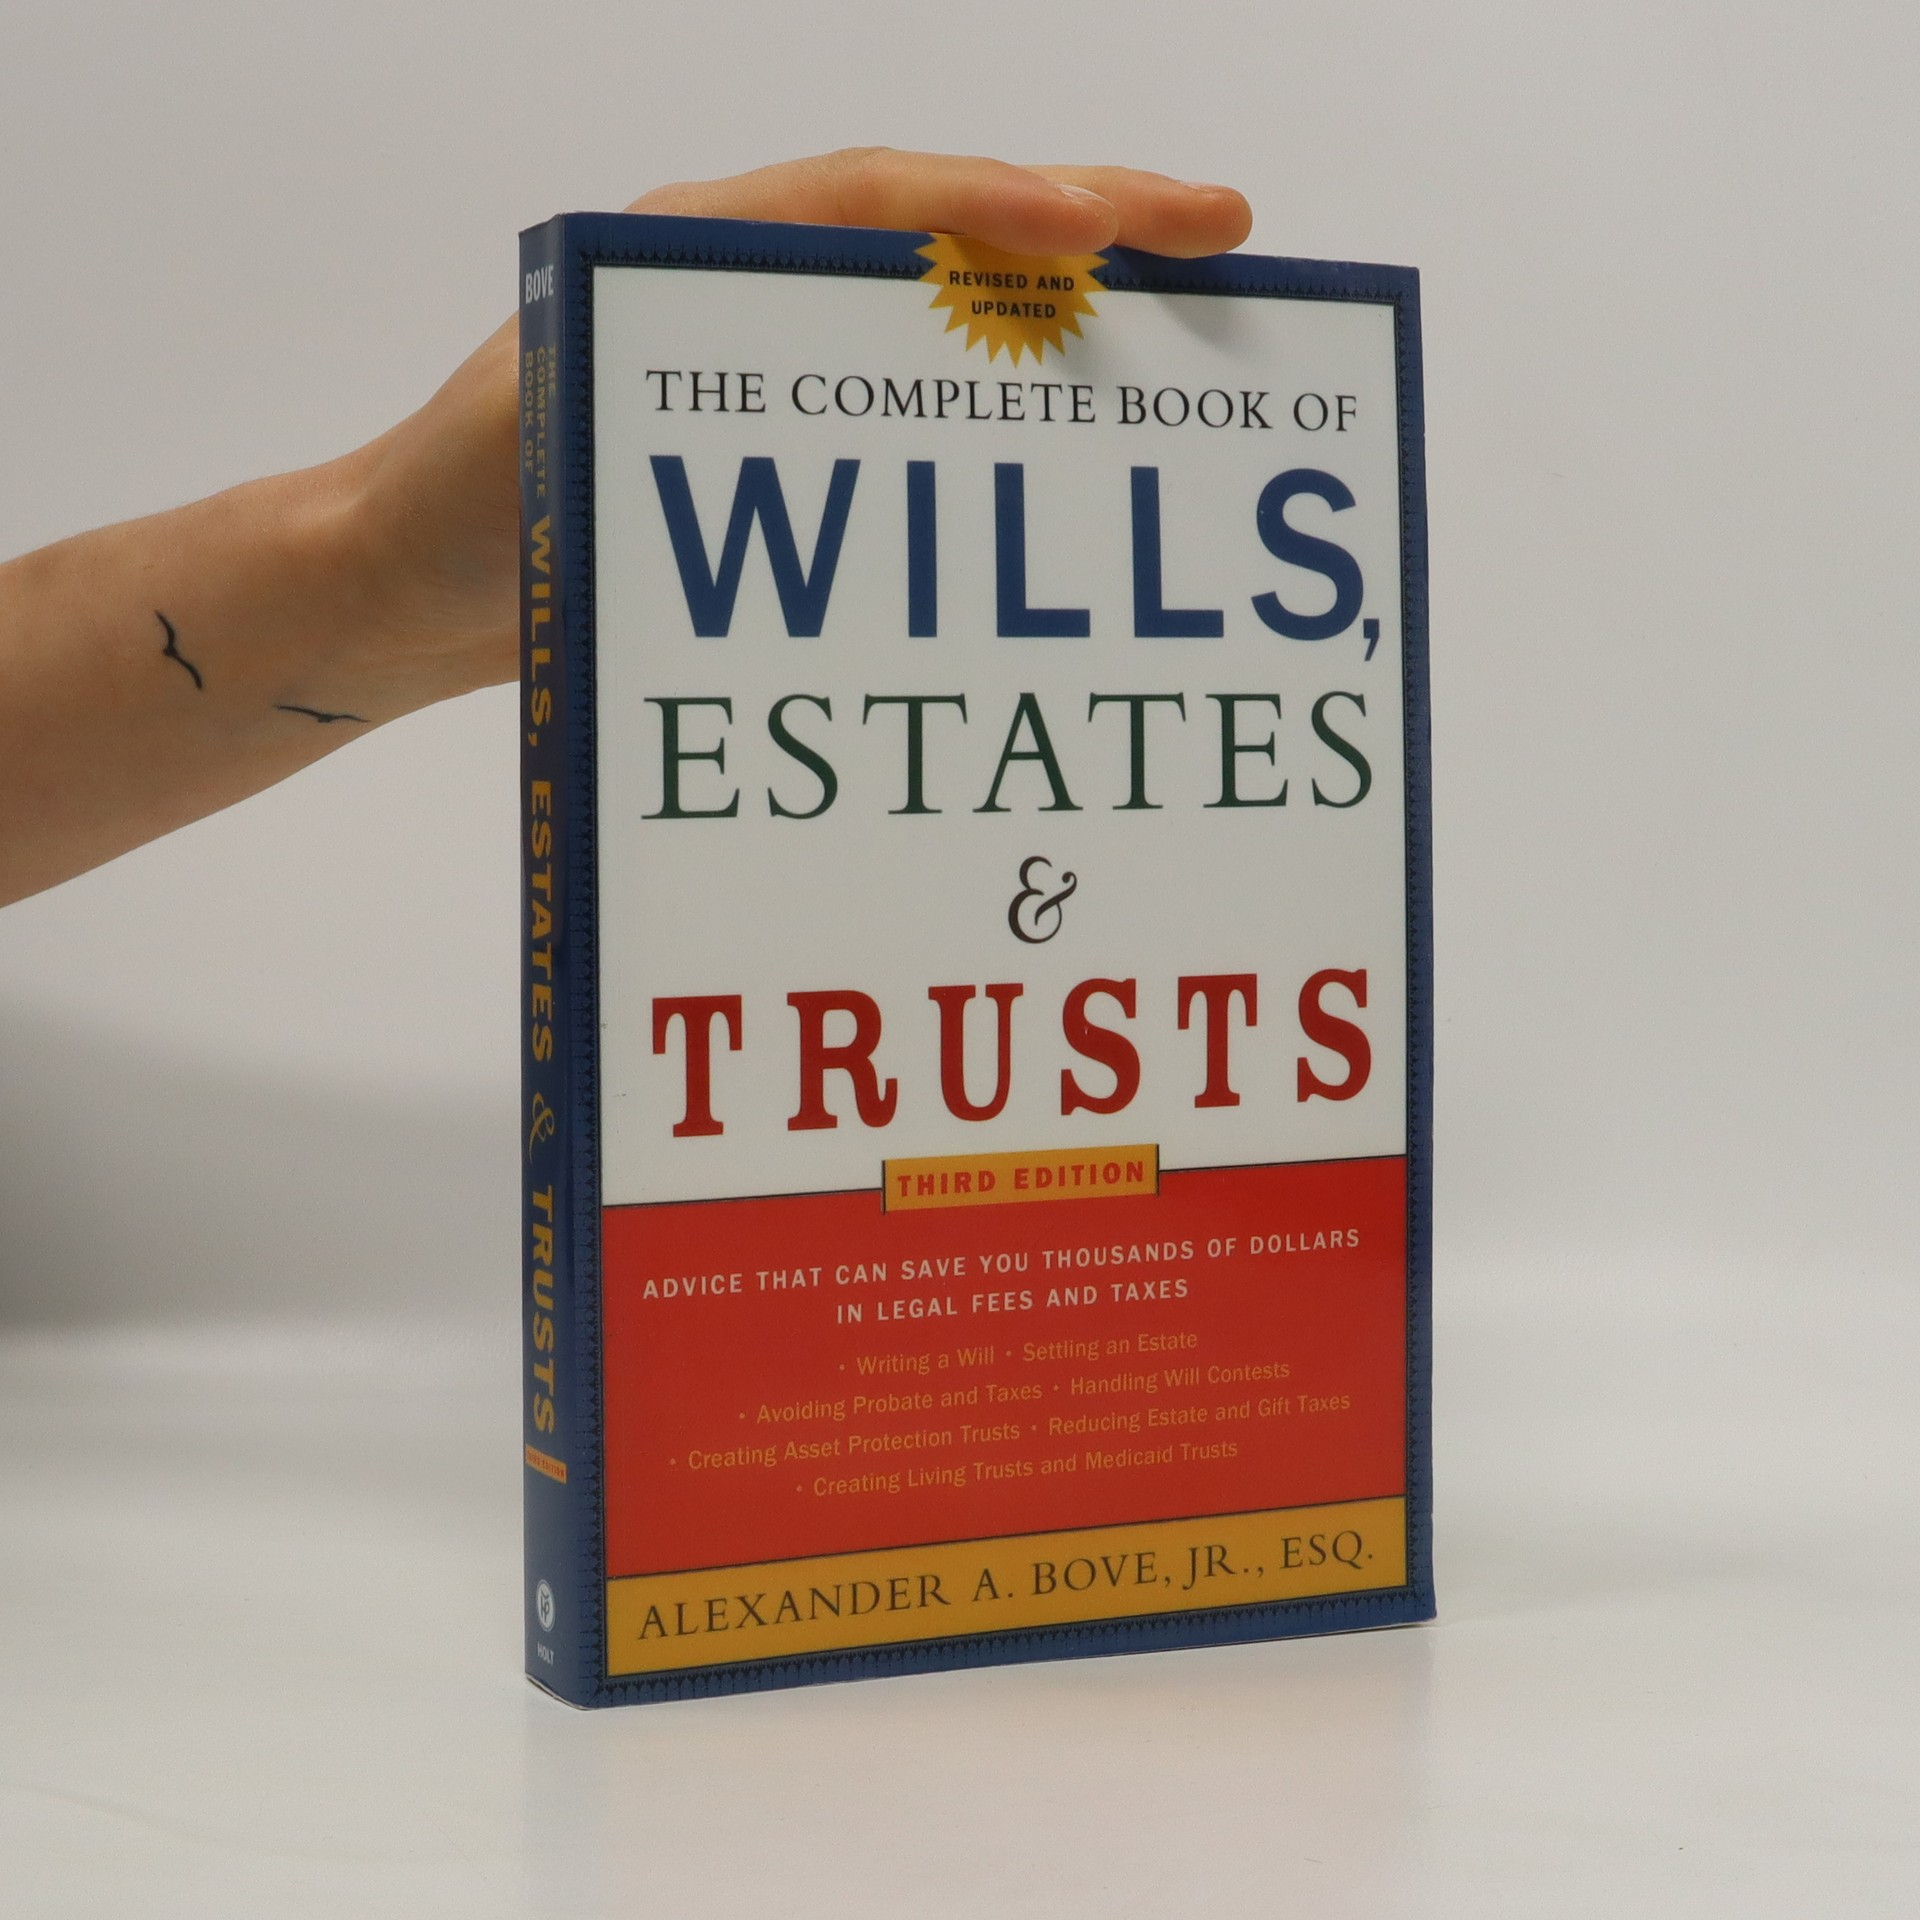 antikvární kniha The Complete Book of Wills, Estates & Trusts, 2005